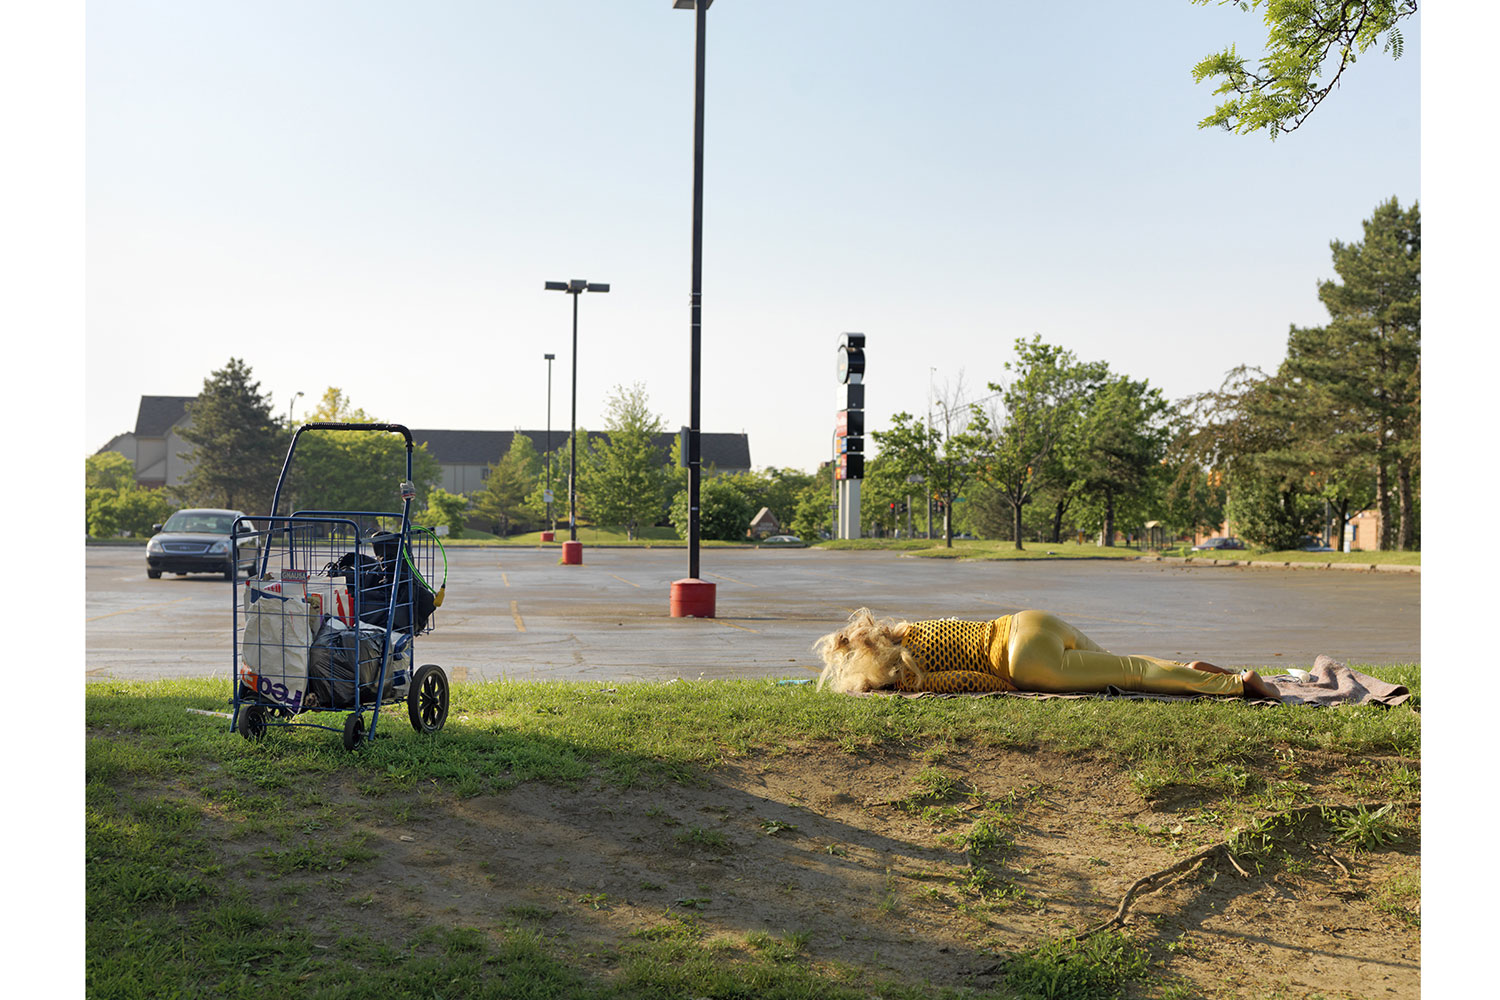 A Woman Sleeping in a Parking Lot Near East Warren Avenue, Detroit, 2010                                                              There are many homeless shelters in Detroit where victims can go in order to seek out help, but many can't or will not go for various reasons.  Often mental illness, a lack of trust or anti-social behavior prevents homeless people from reaching out.